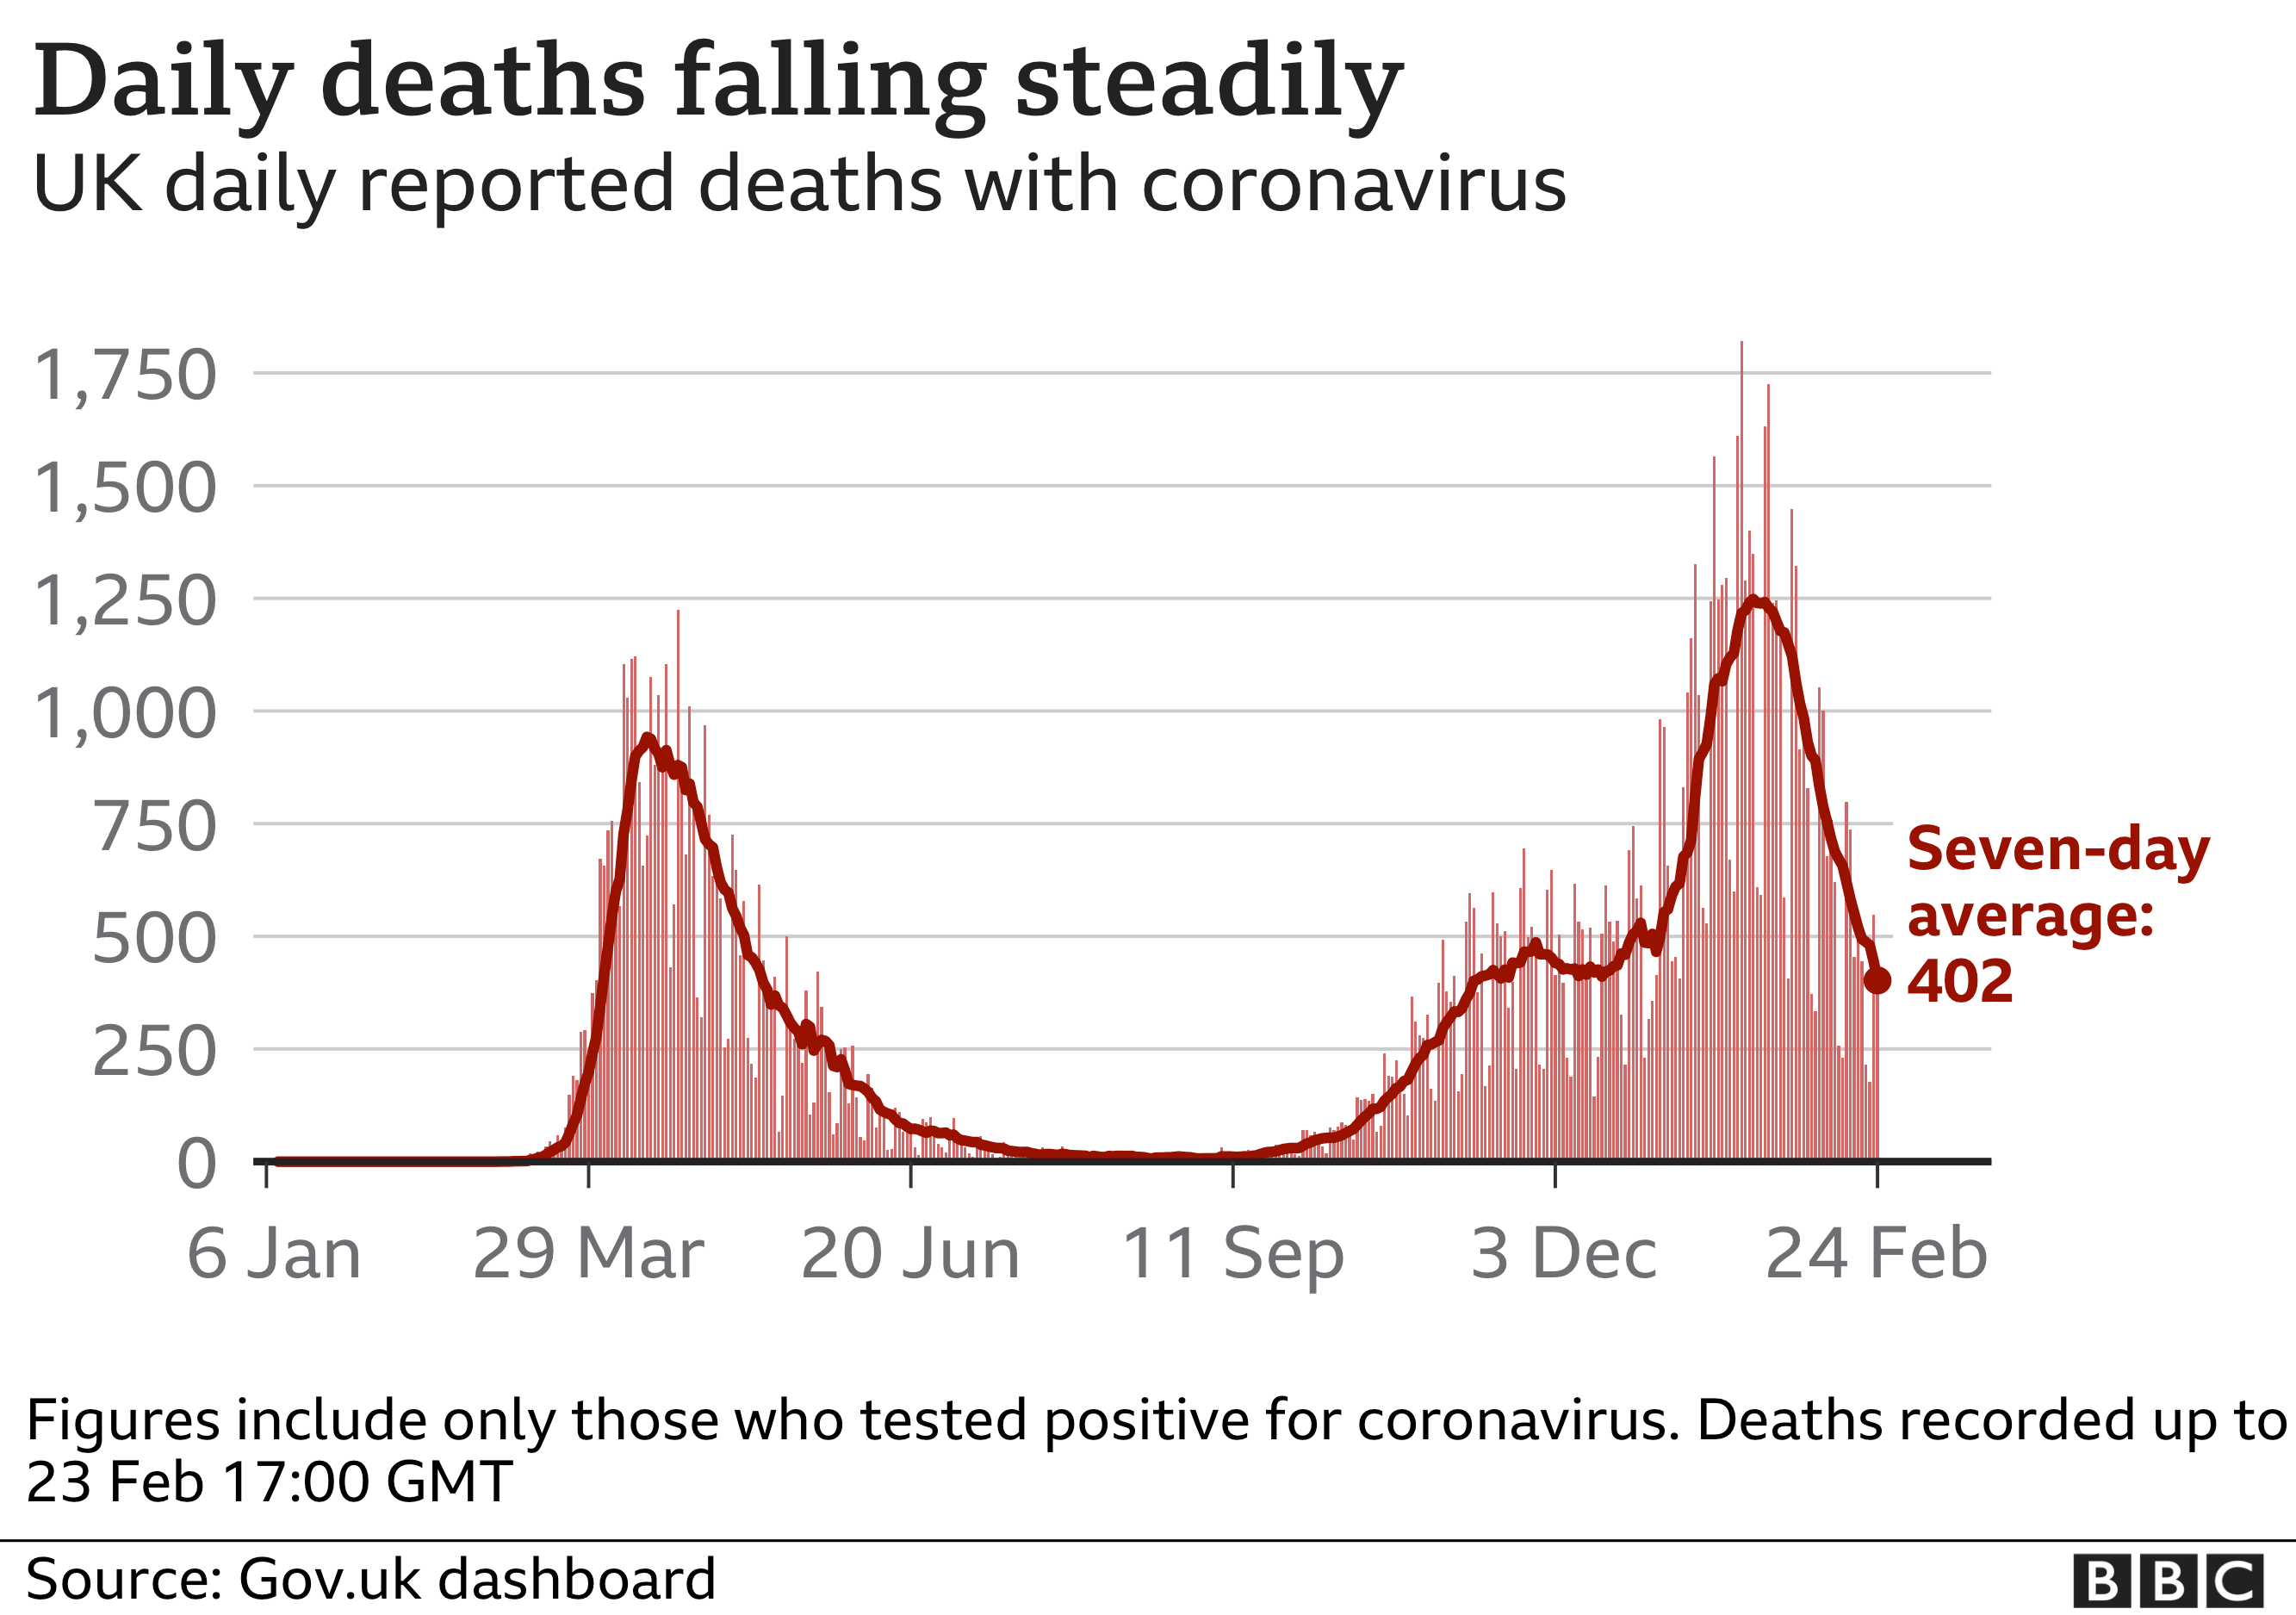 Chart showing daily deaths are falling steadily